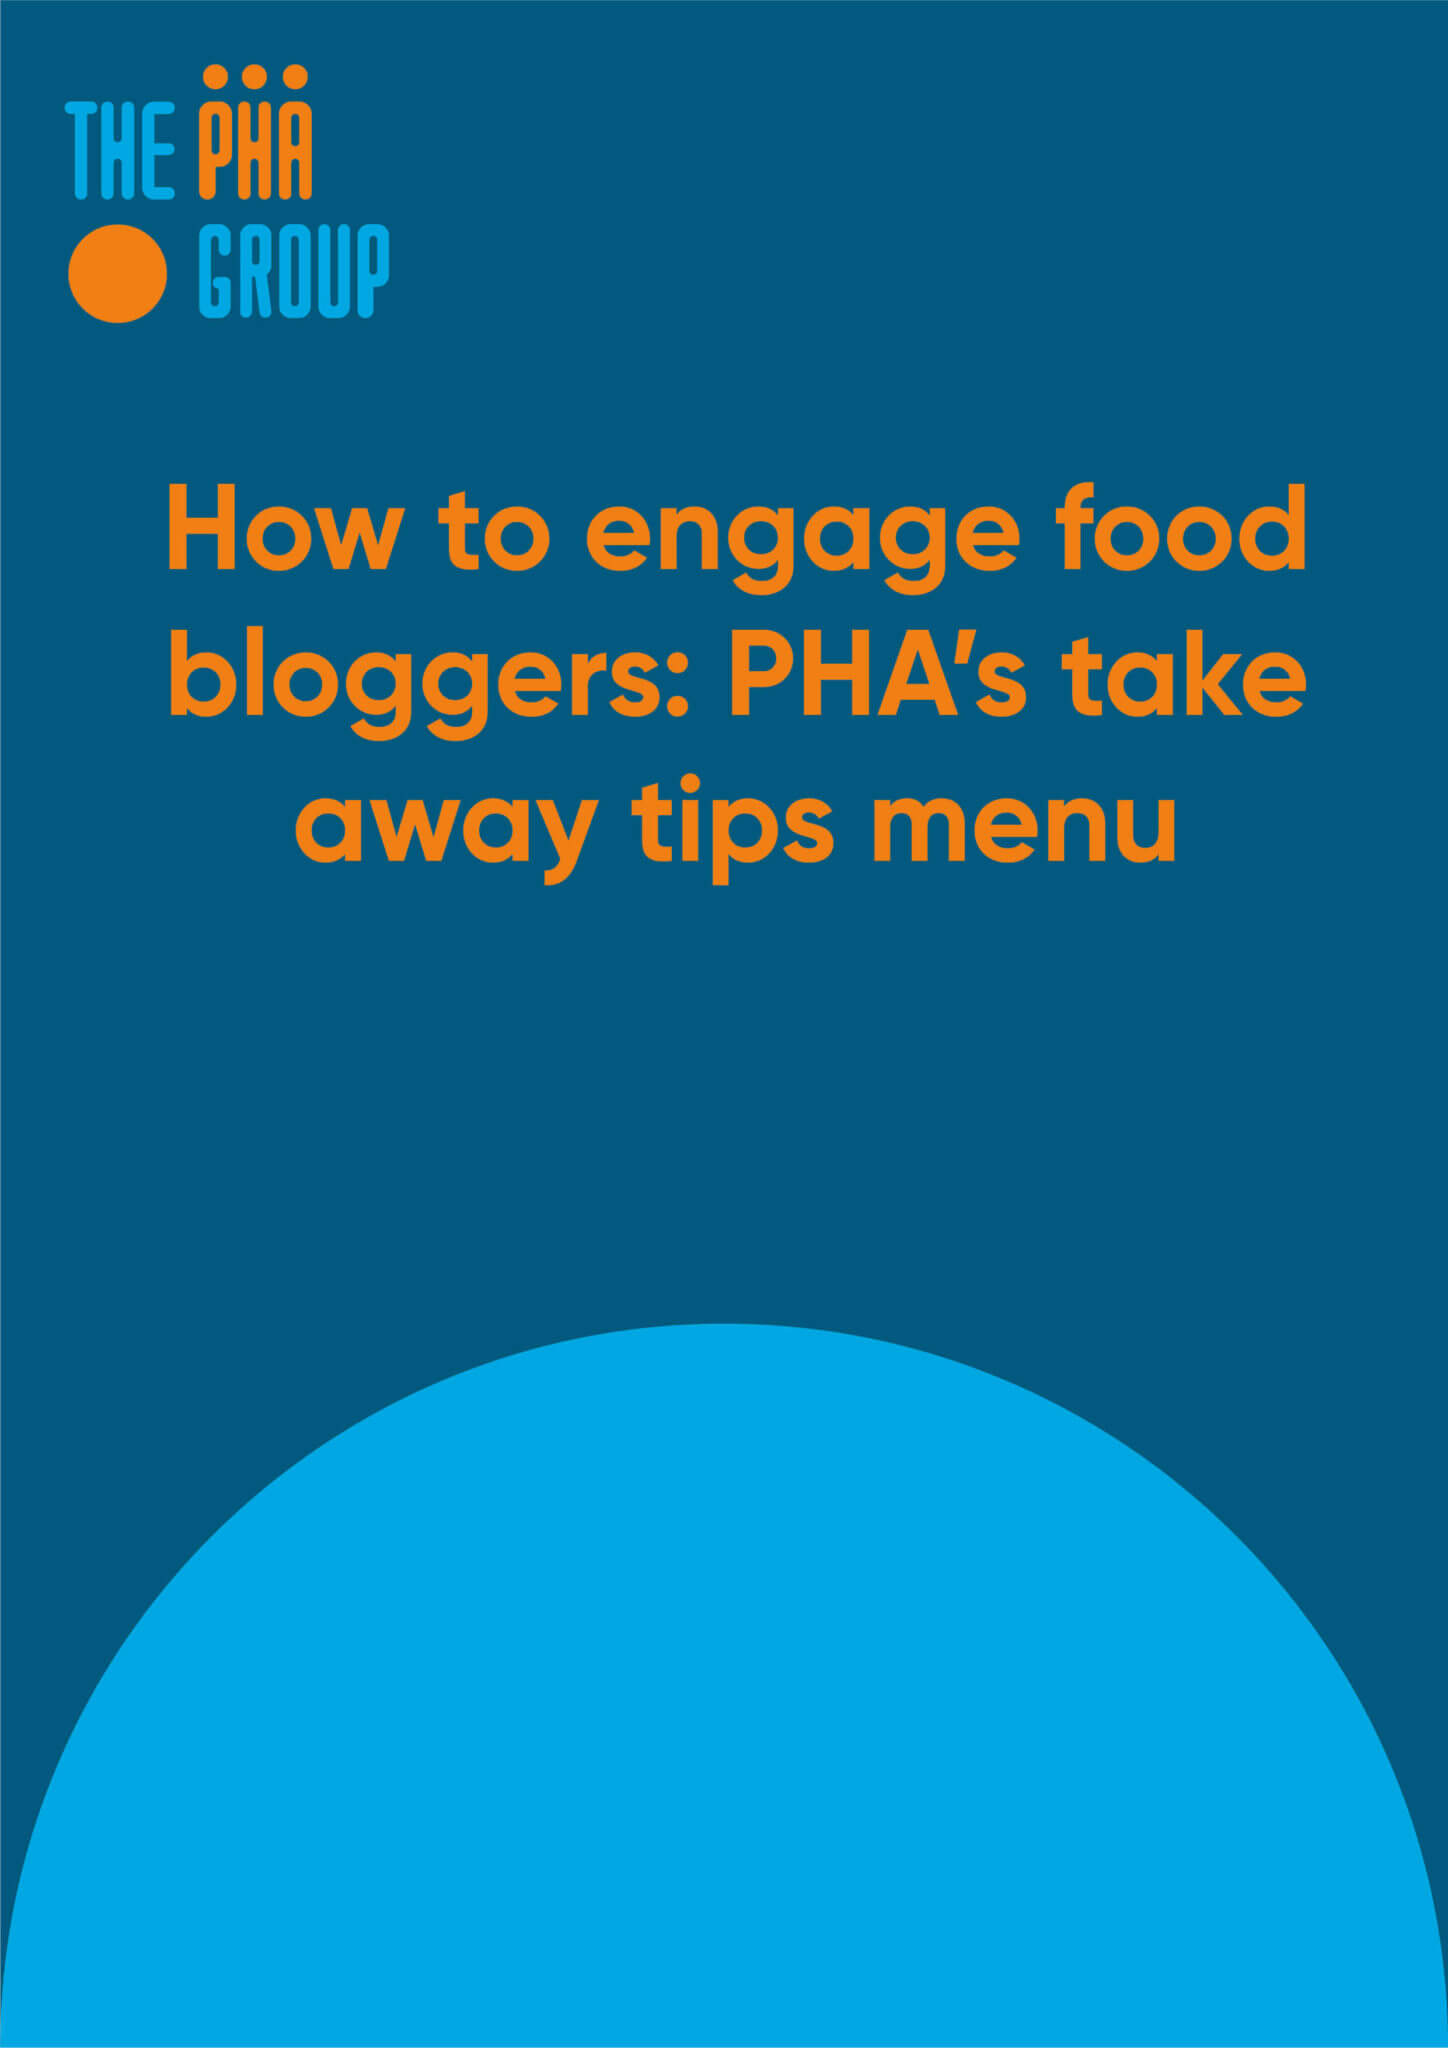 How to engage food bloggers: The PHA Group's take away tips menu